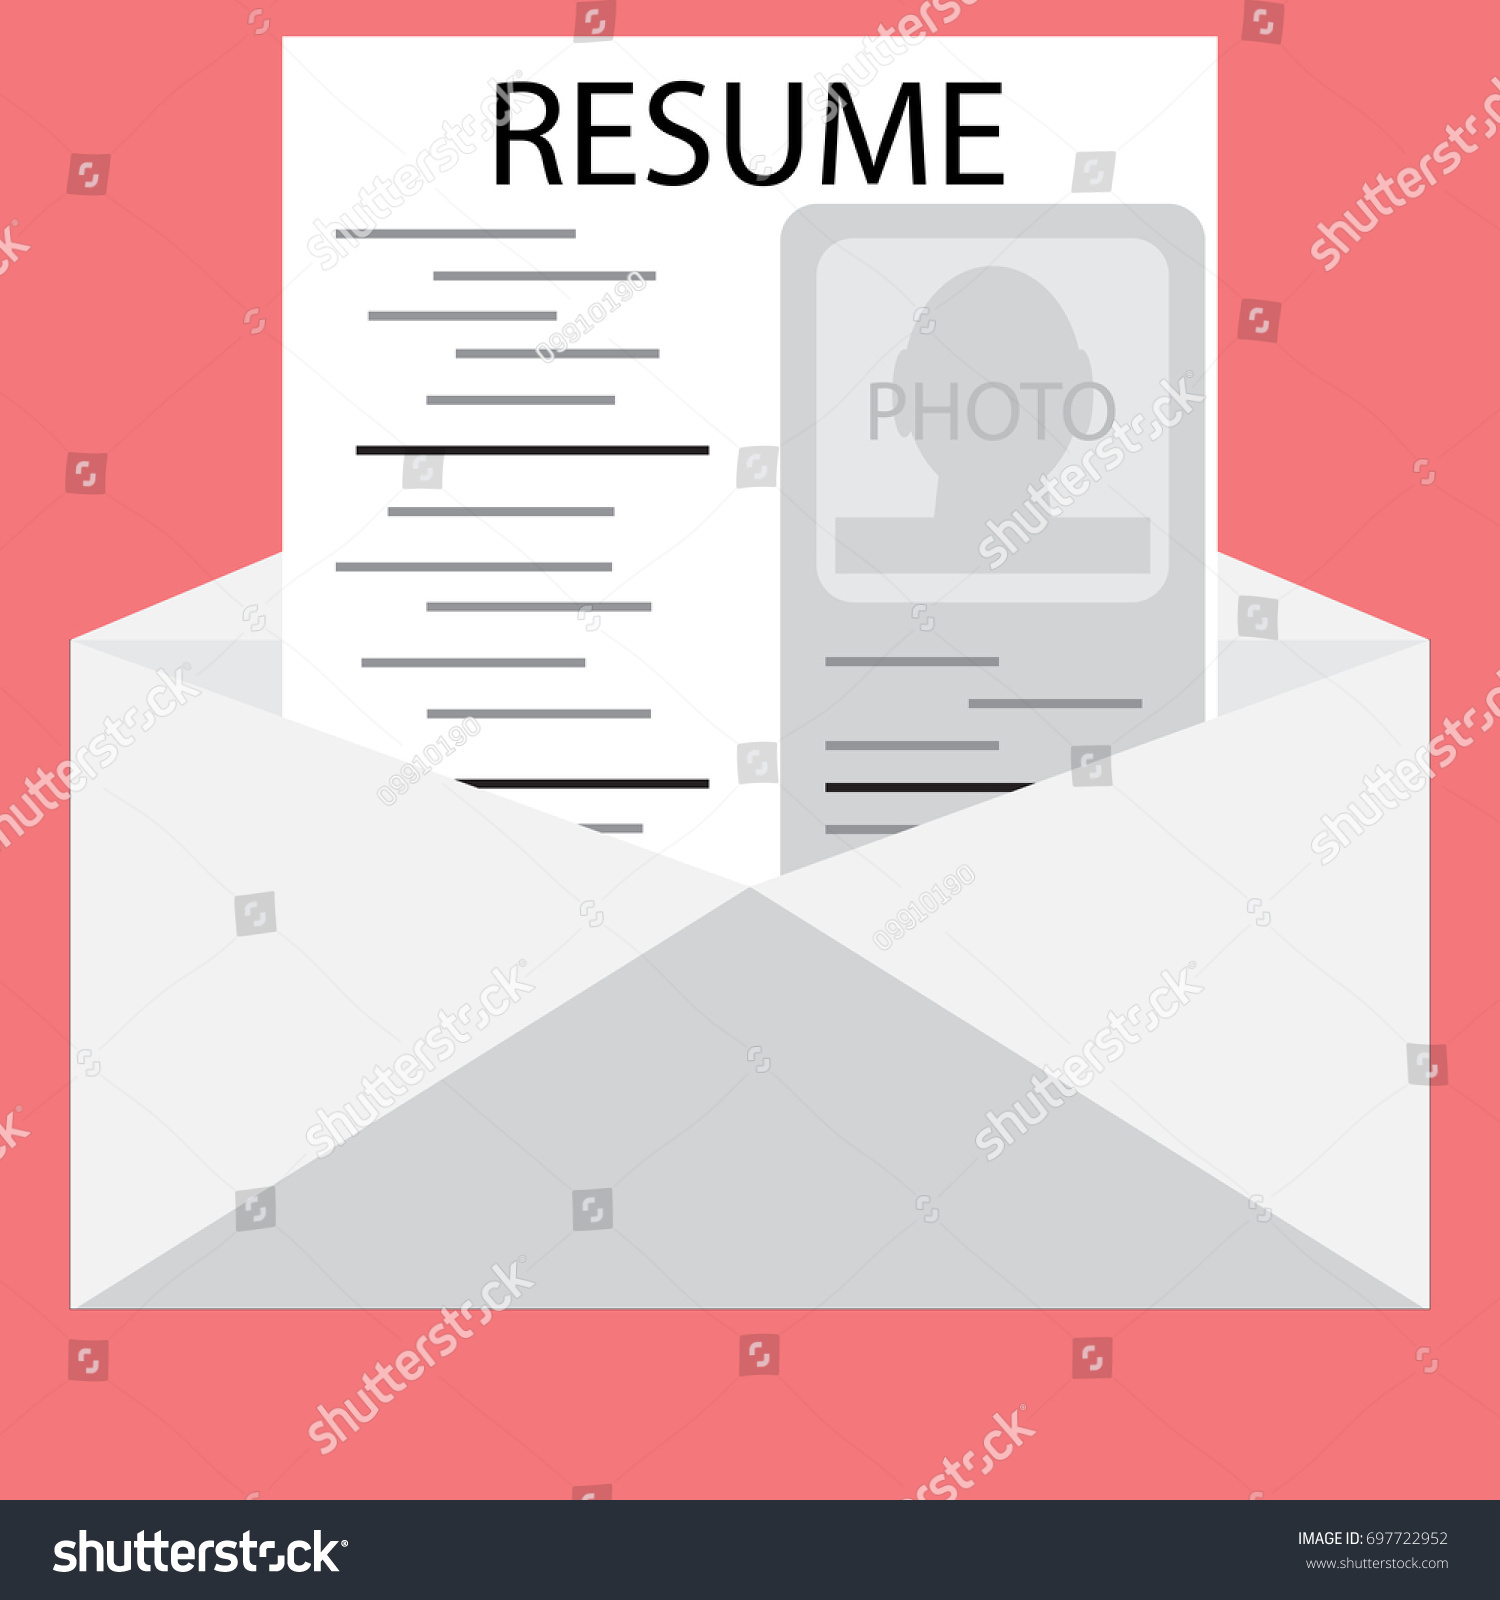 Templates Resume Envelope Invite Job Interview Stock Illustration